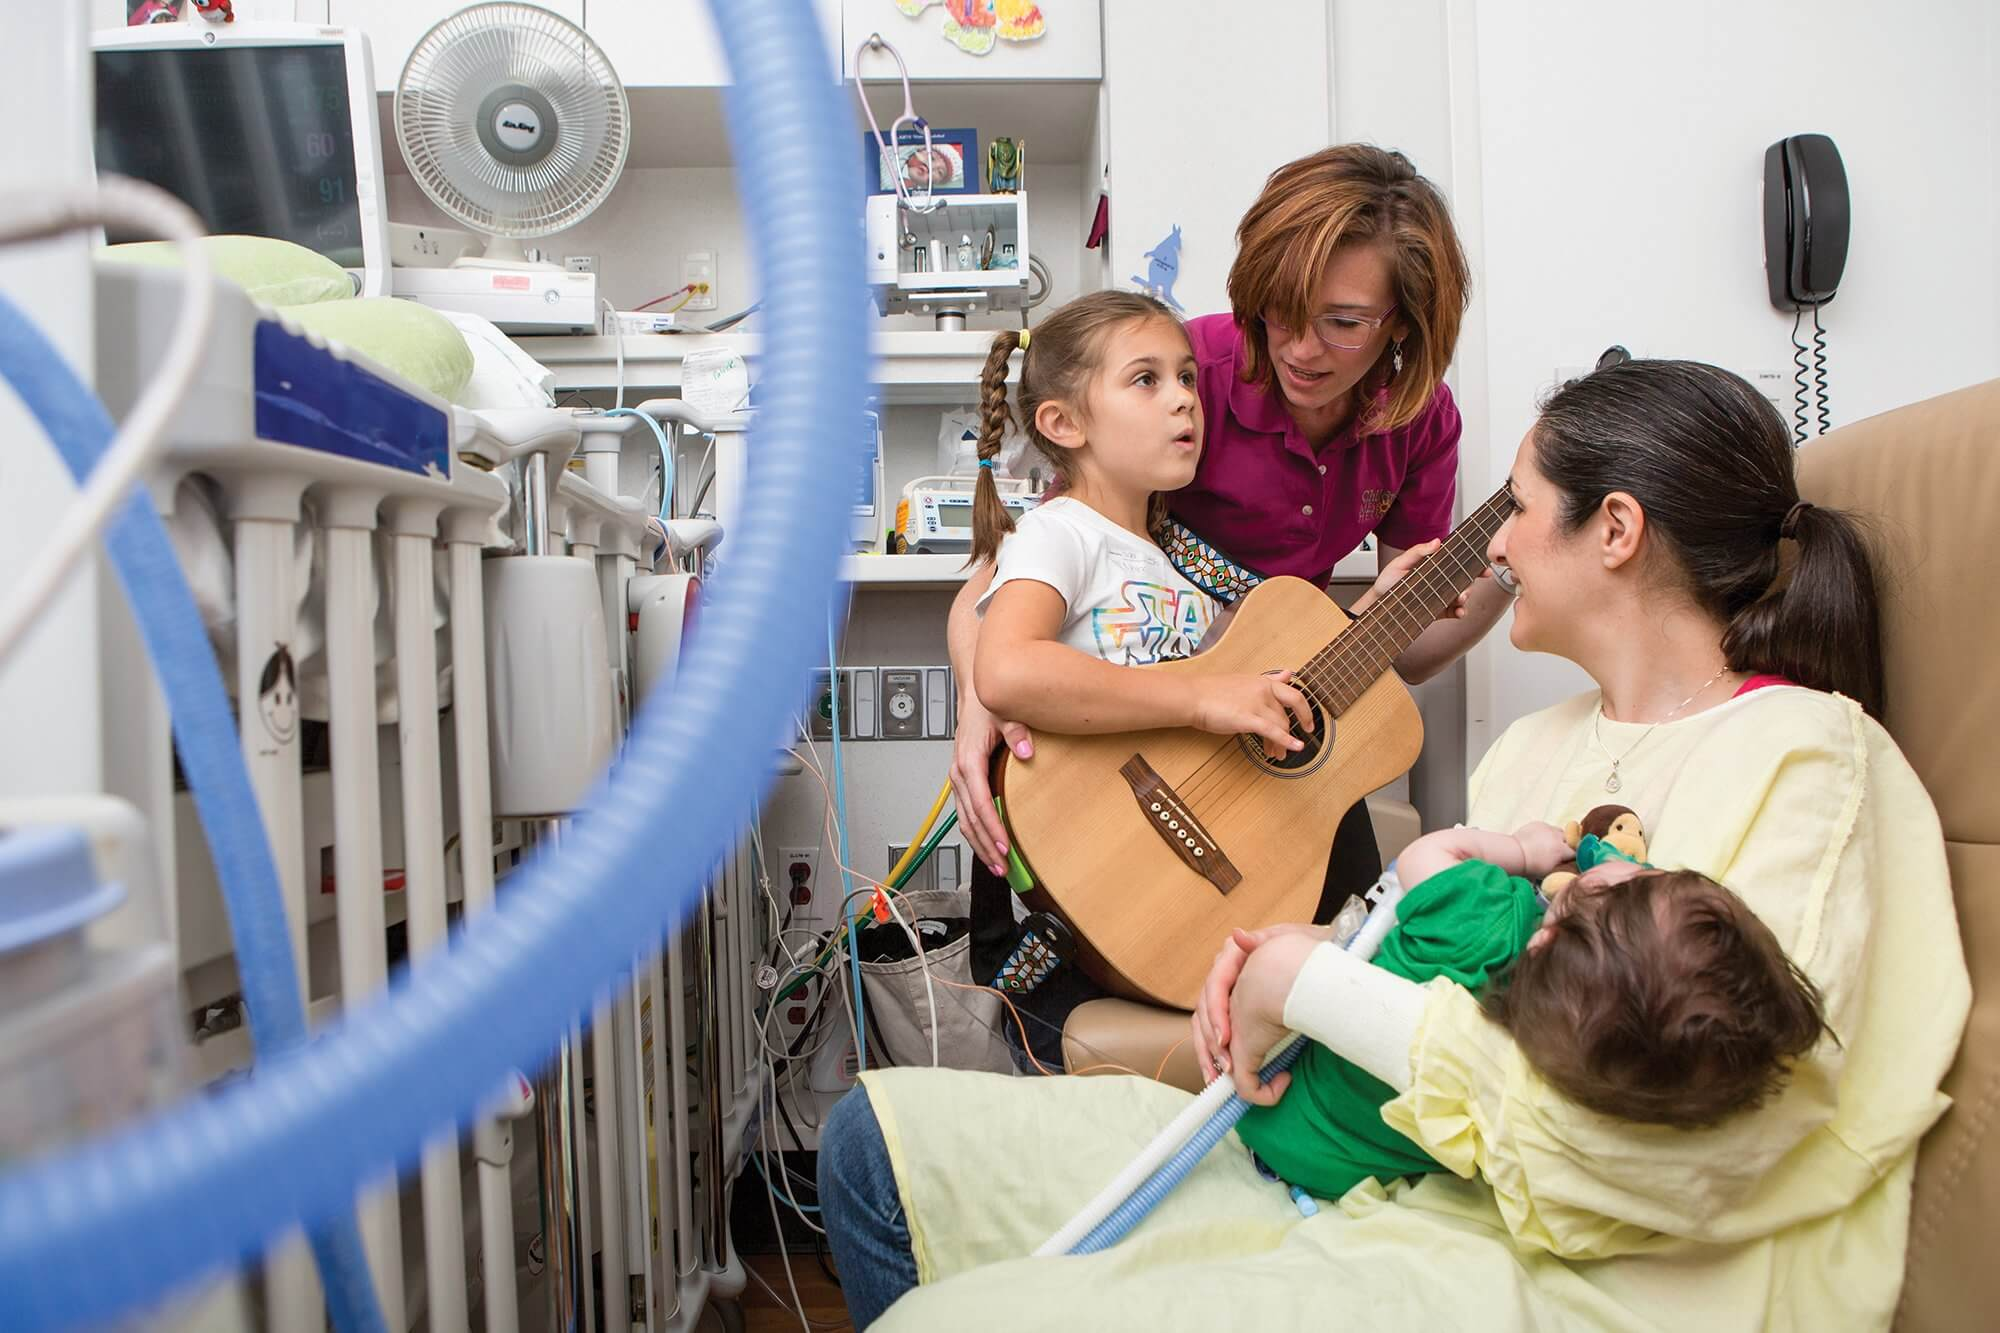 Music therapist Jennifer Townsend and Avery, 6, serenade Avery's mother and brother, Patrick.